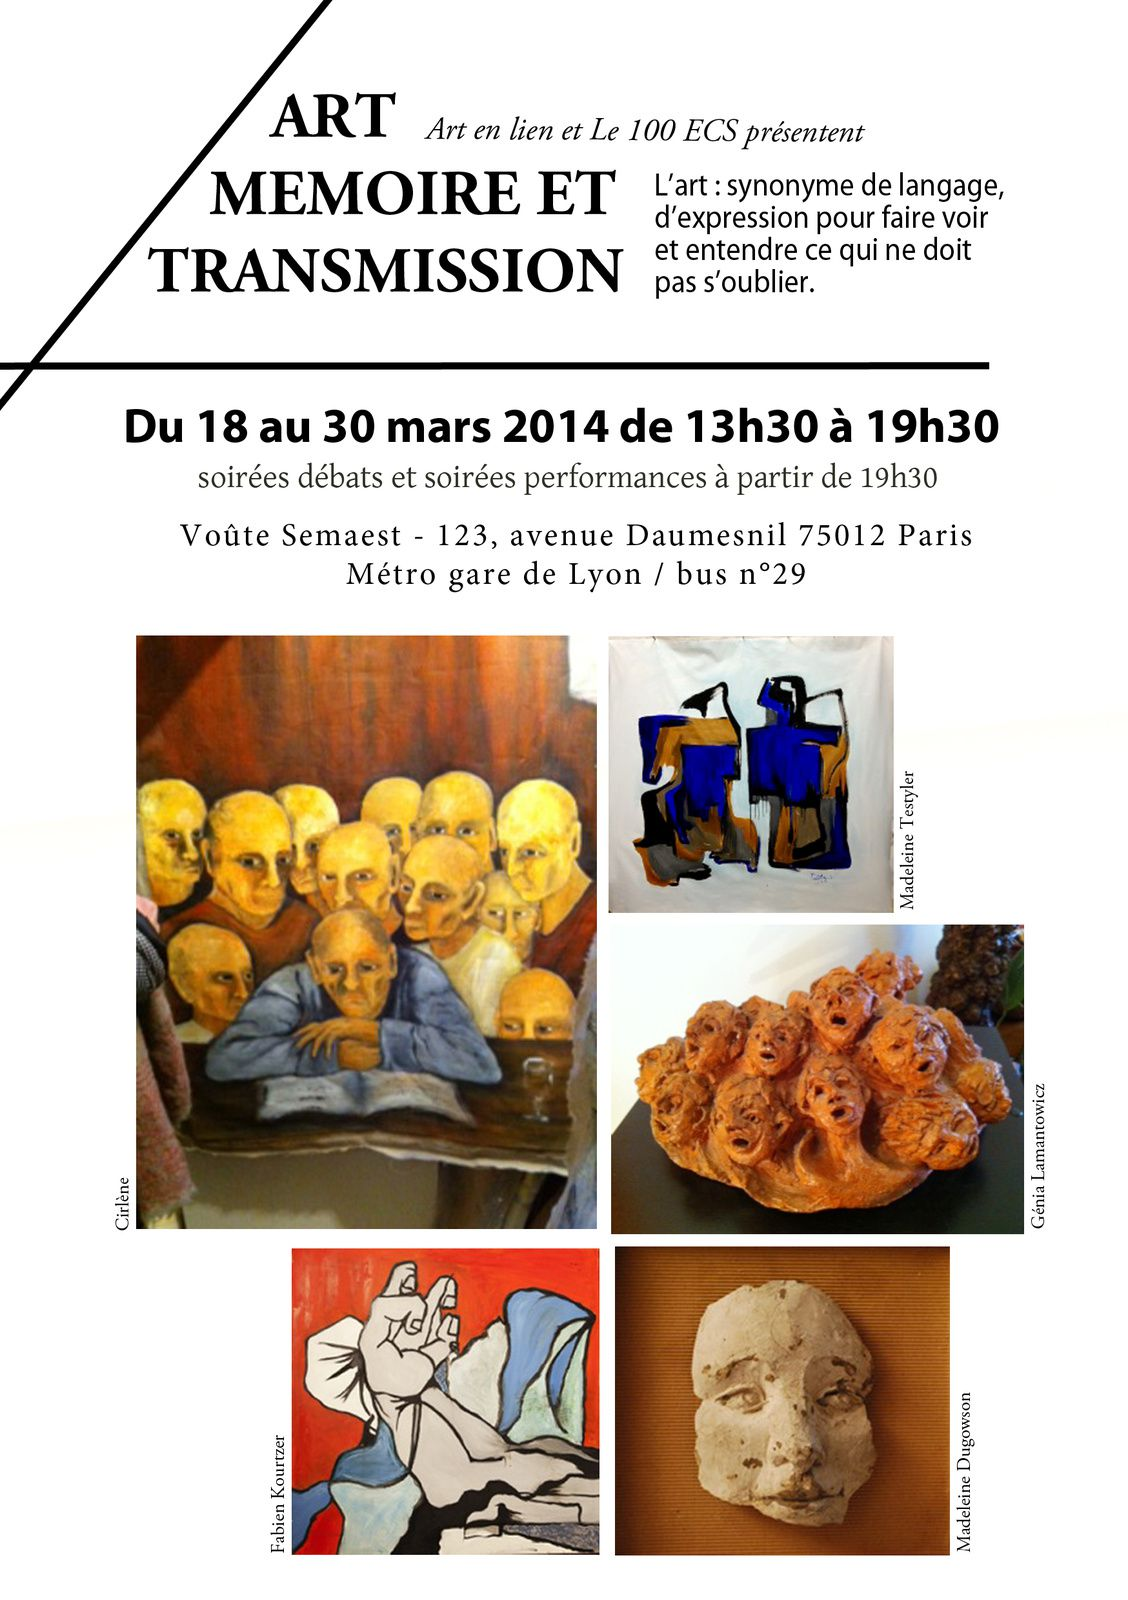 ART MEMOIRE ET TRANSMISSION